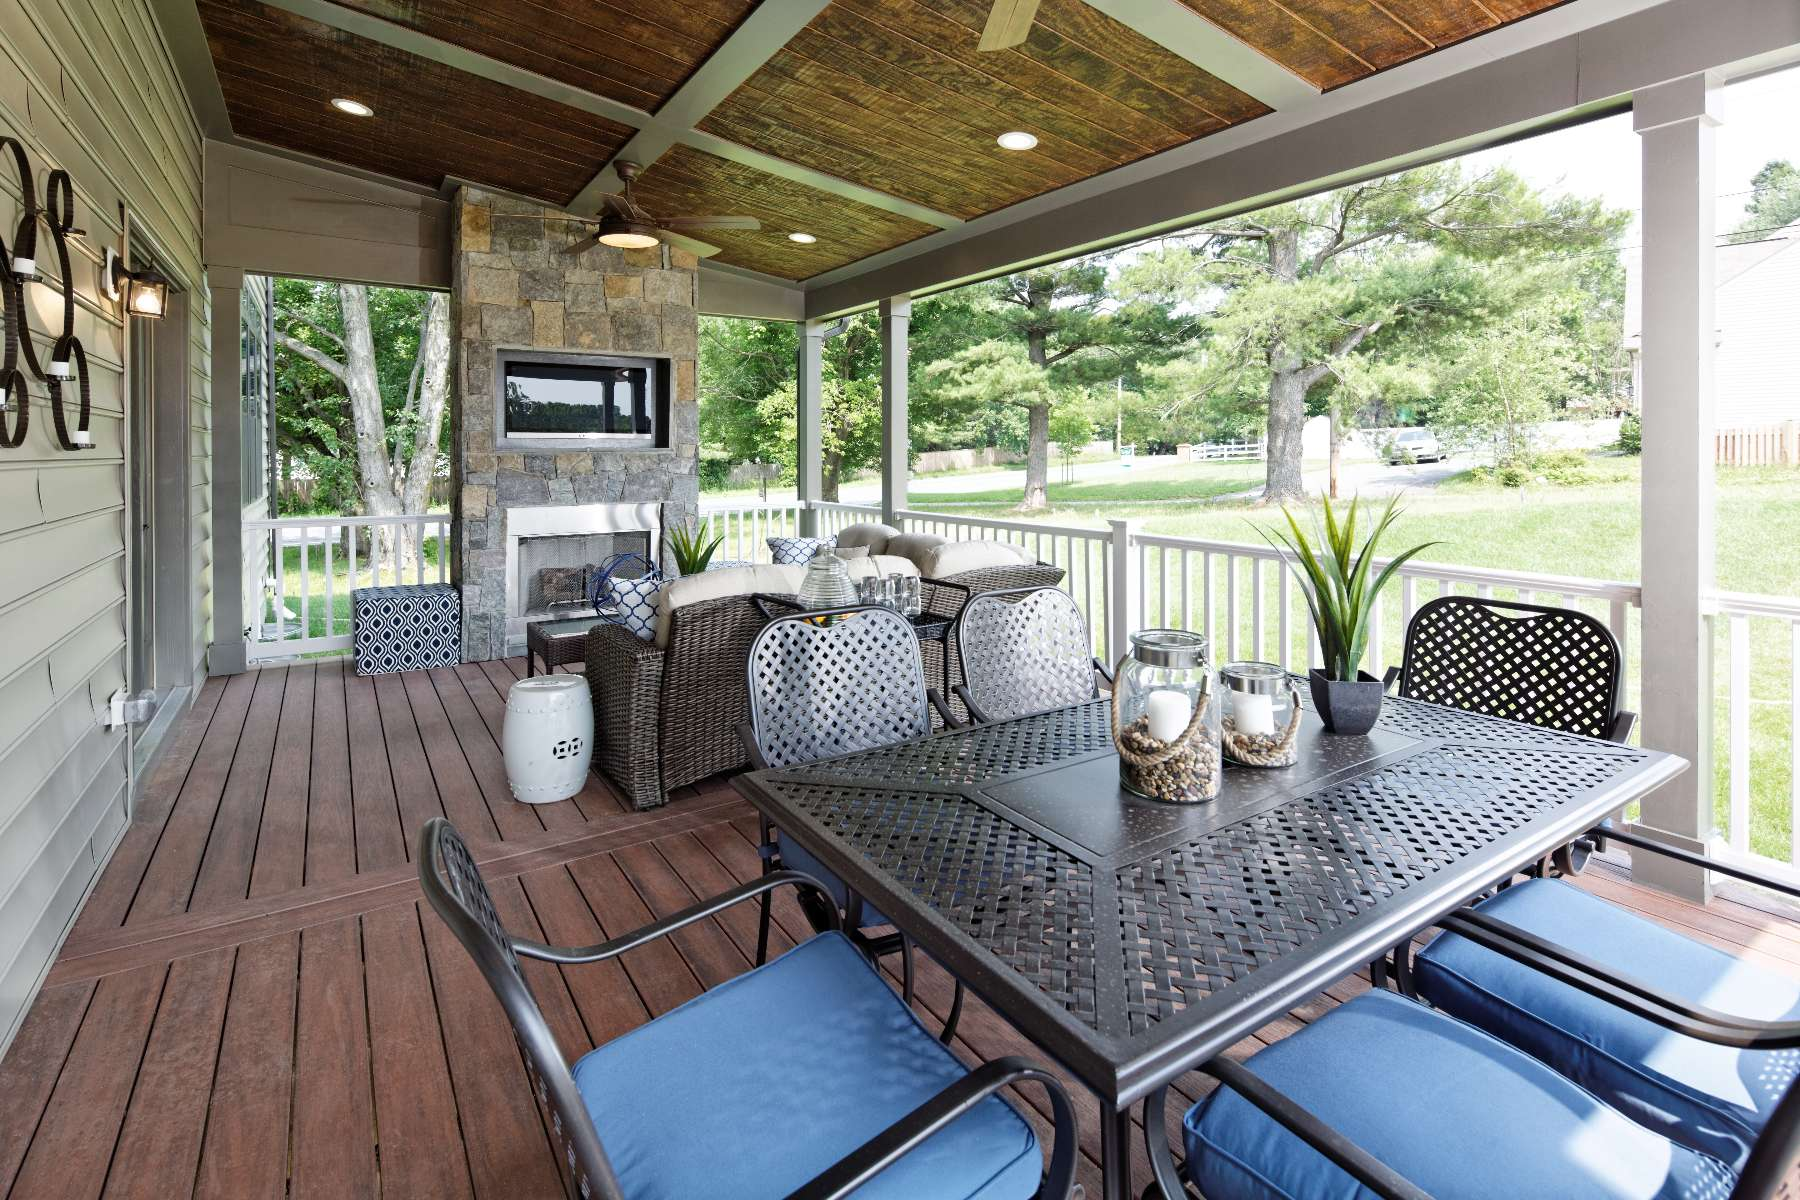 Outdoor Living Spaces Gallery, New Homes in Maryland, Virginia, Washington D.C.